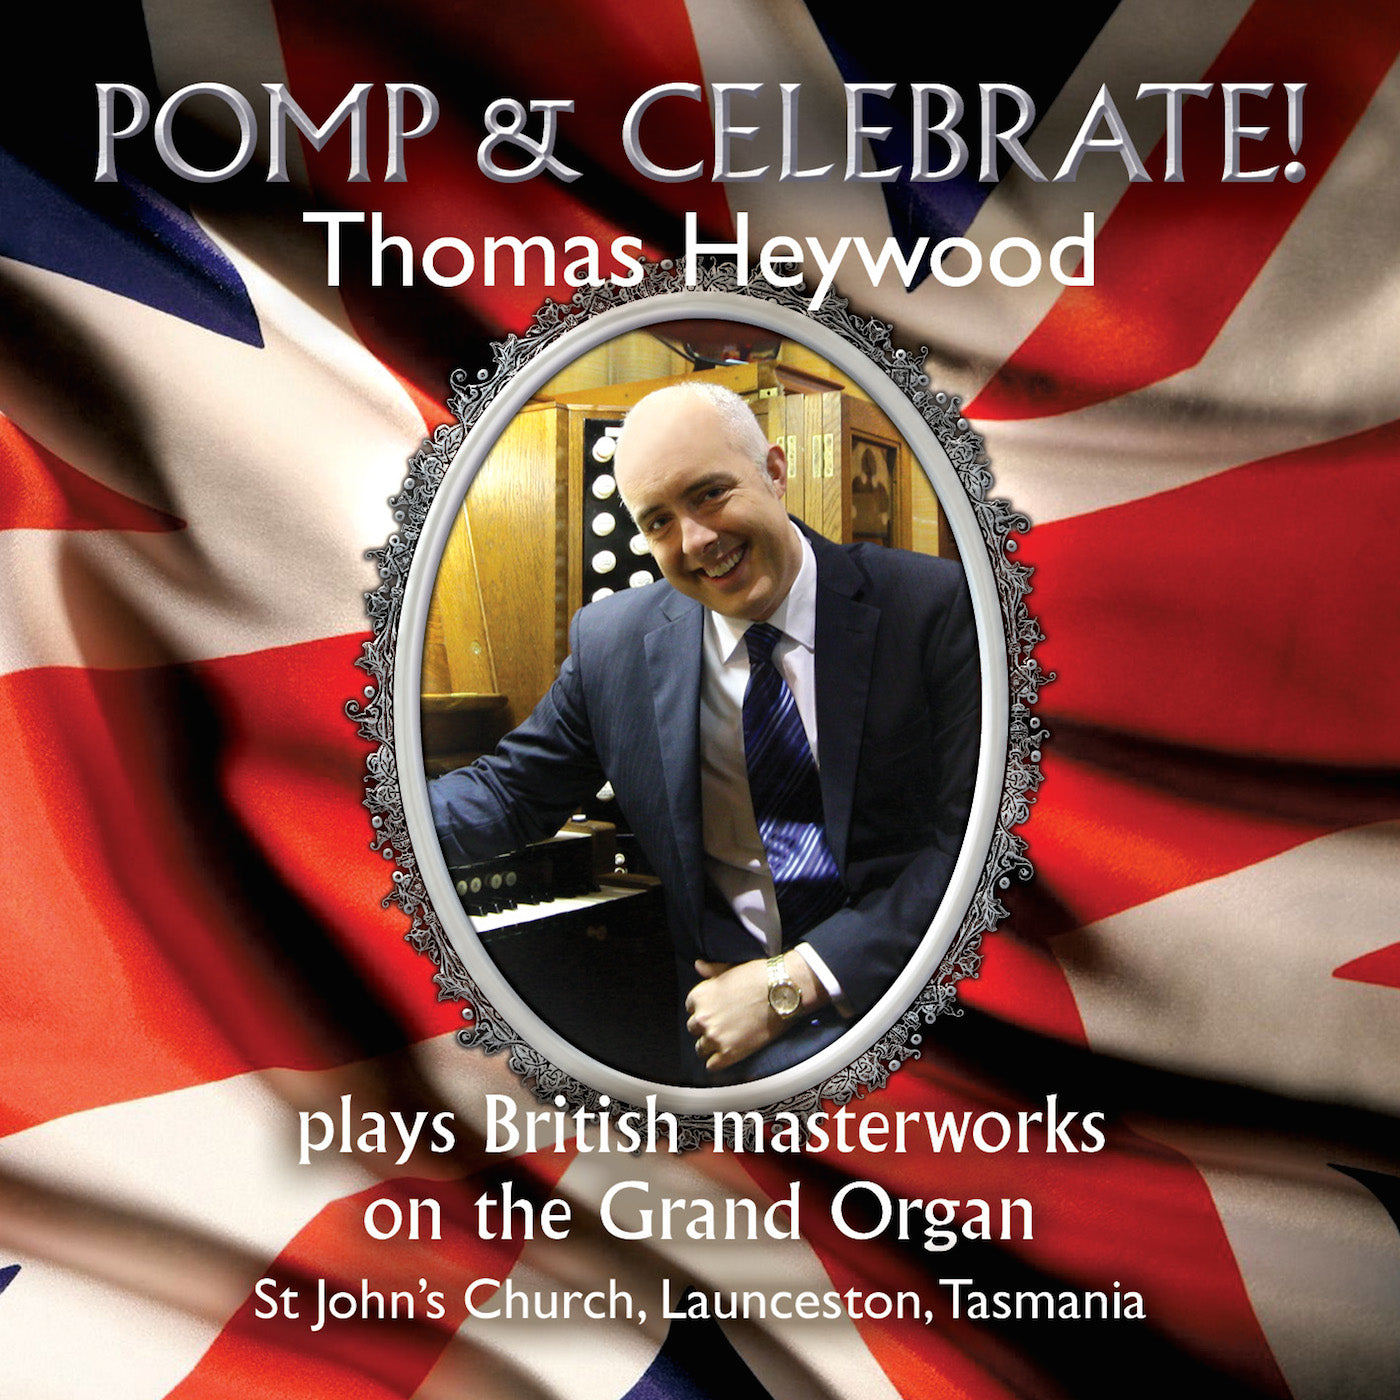 Pomp & Celebrate! (MP3 Album) | Thomas Heywood | Concert Organ International